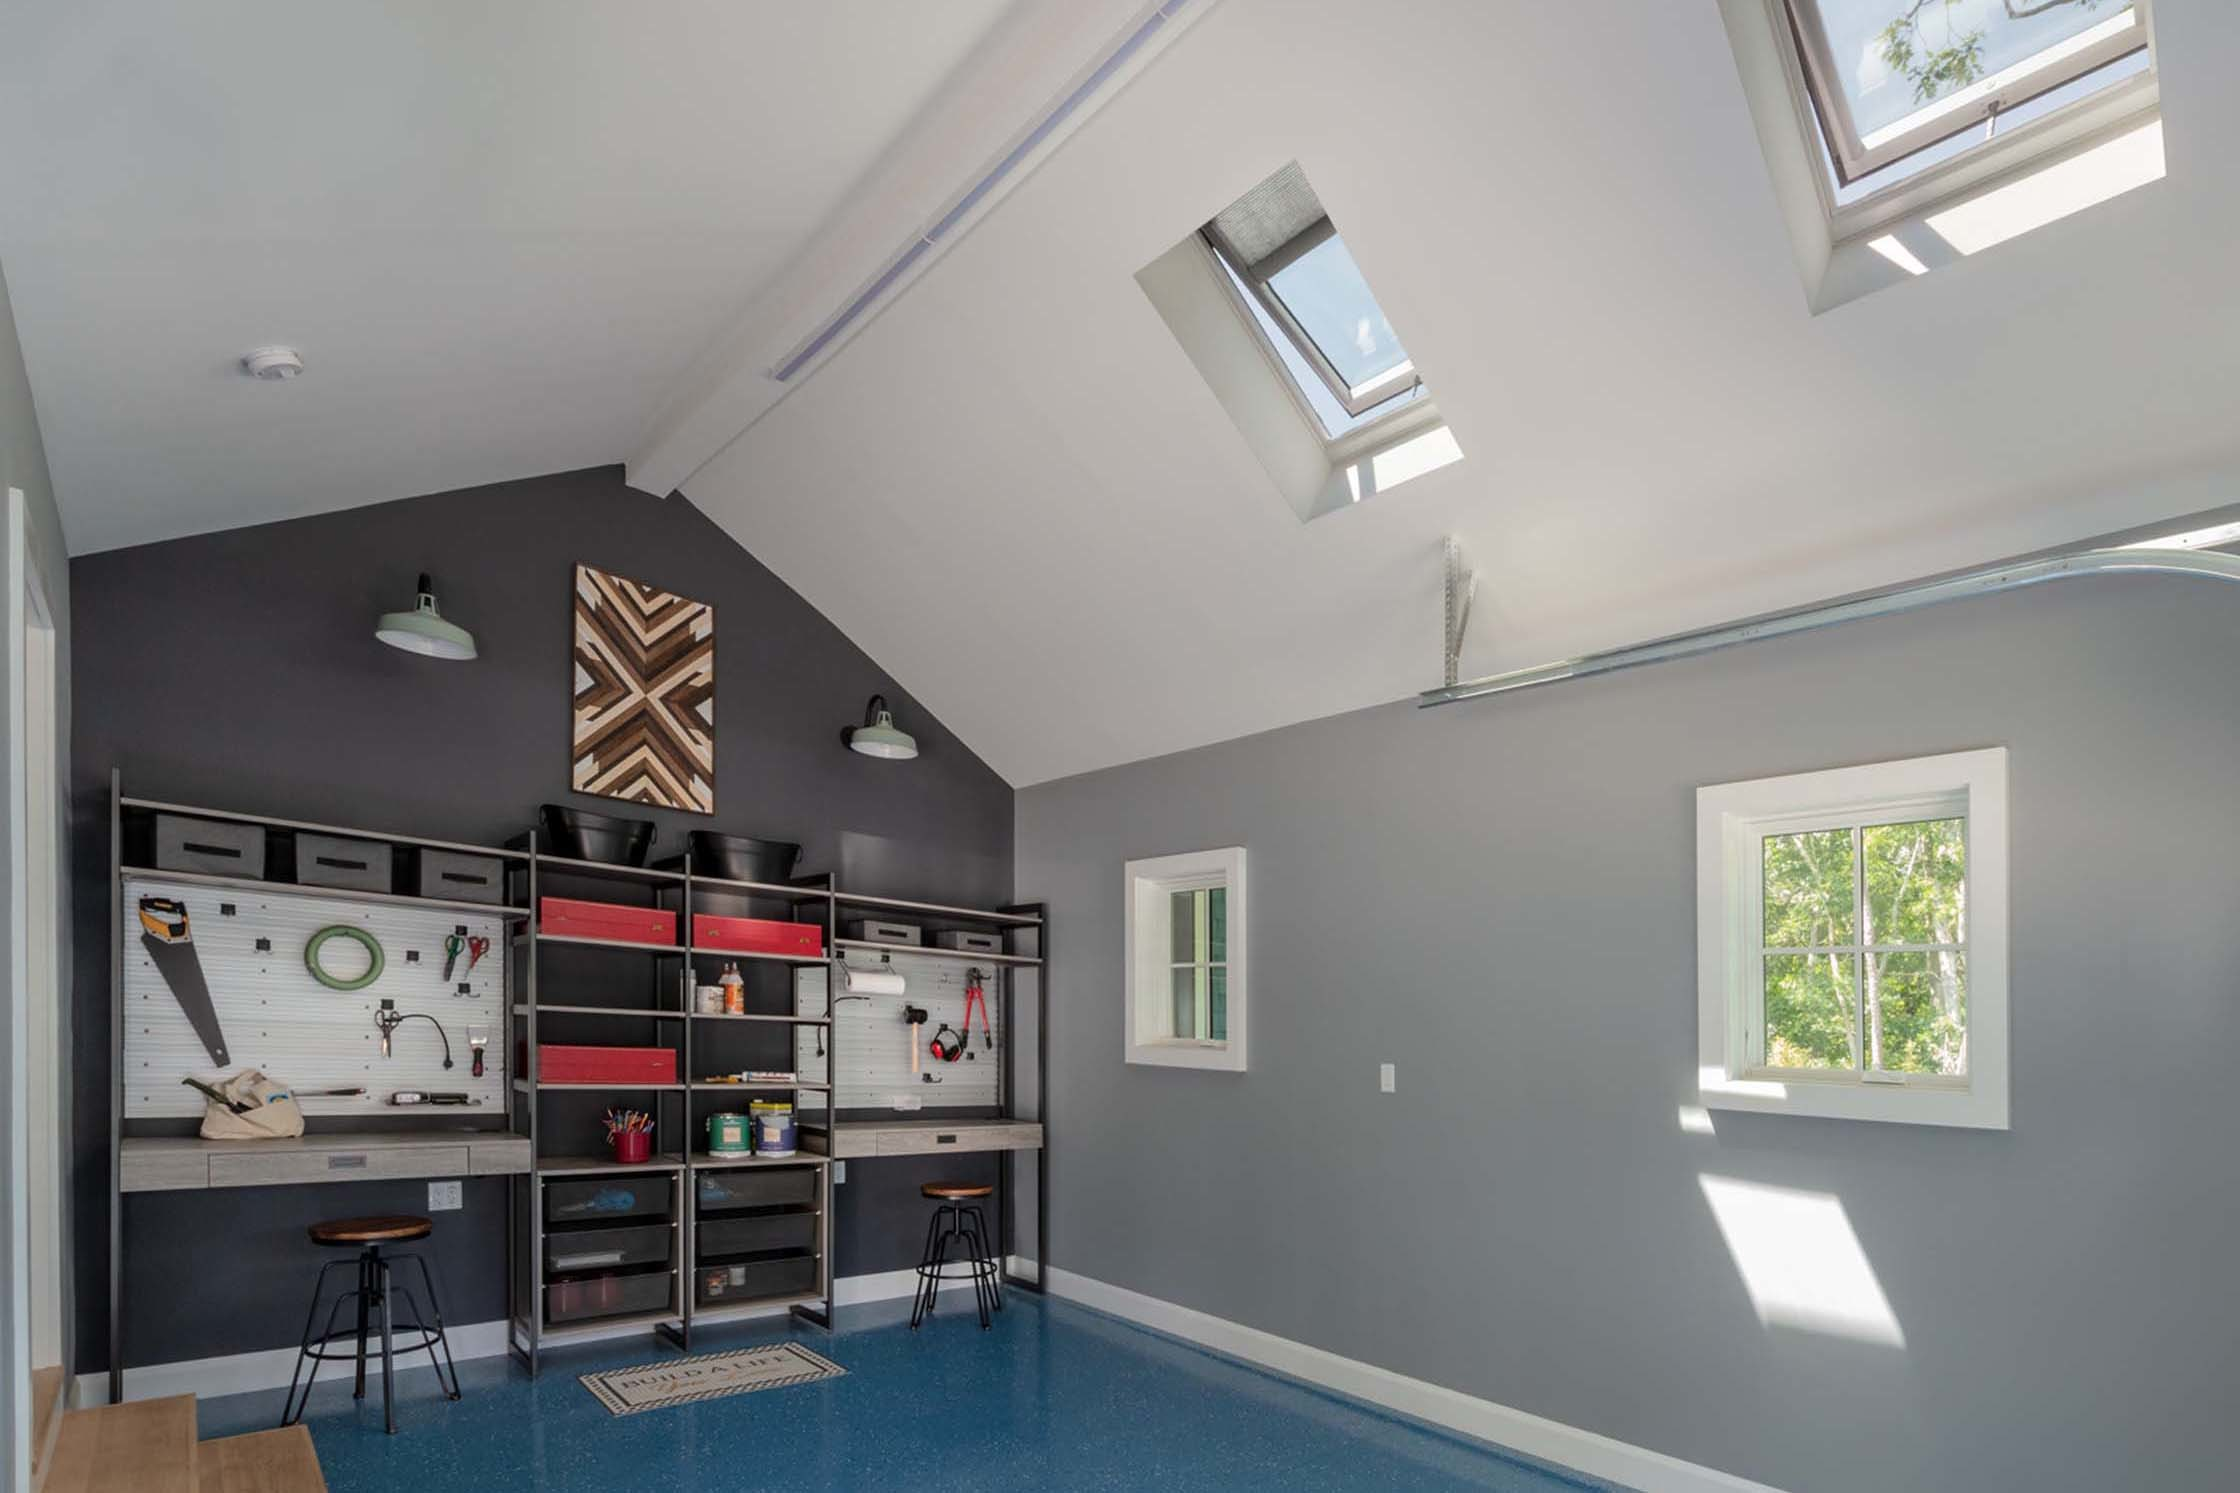 Garage maker space skylights small